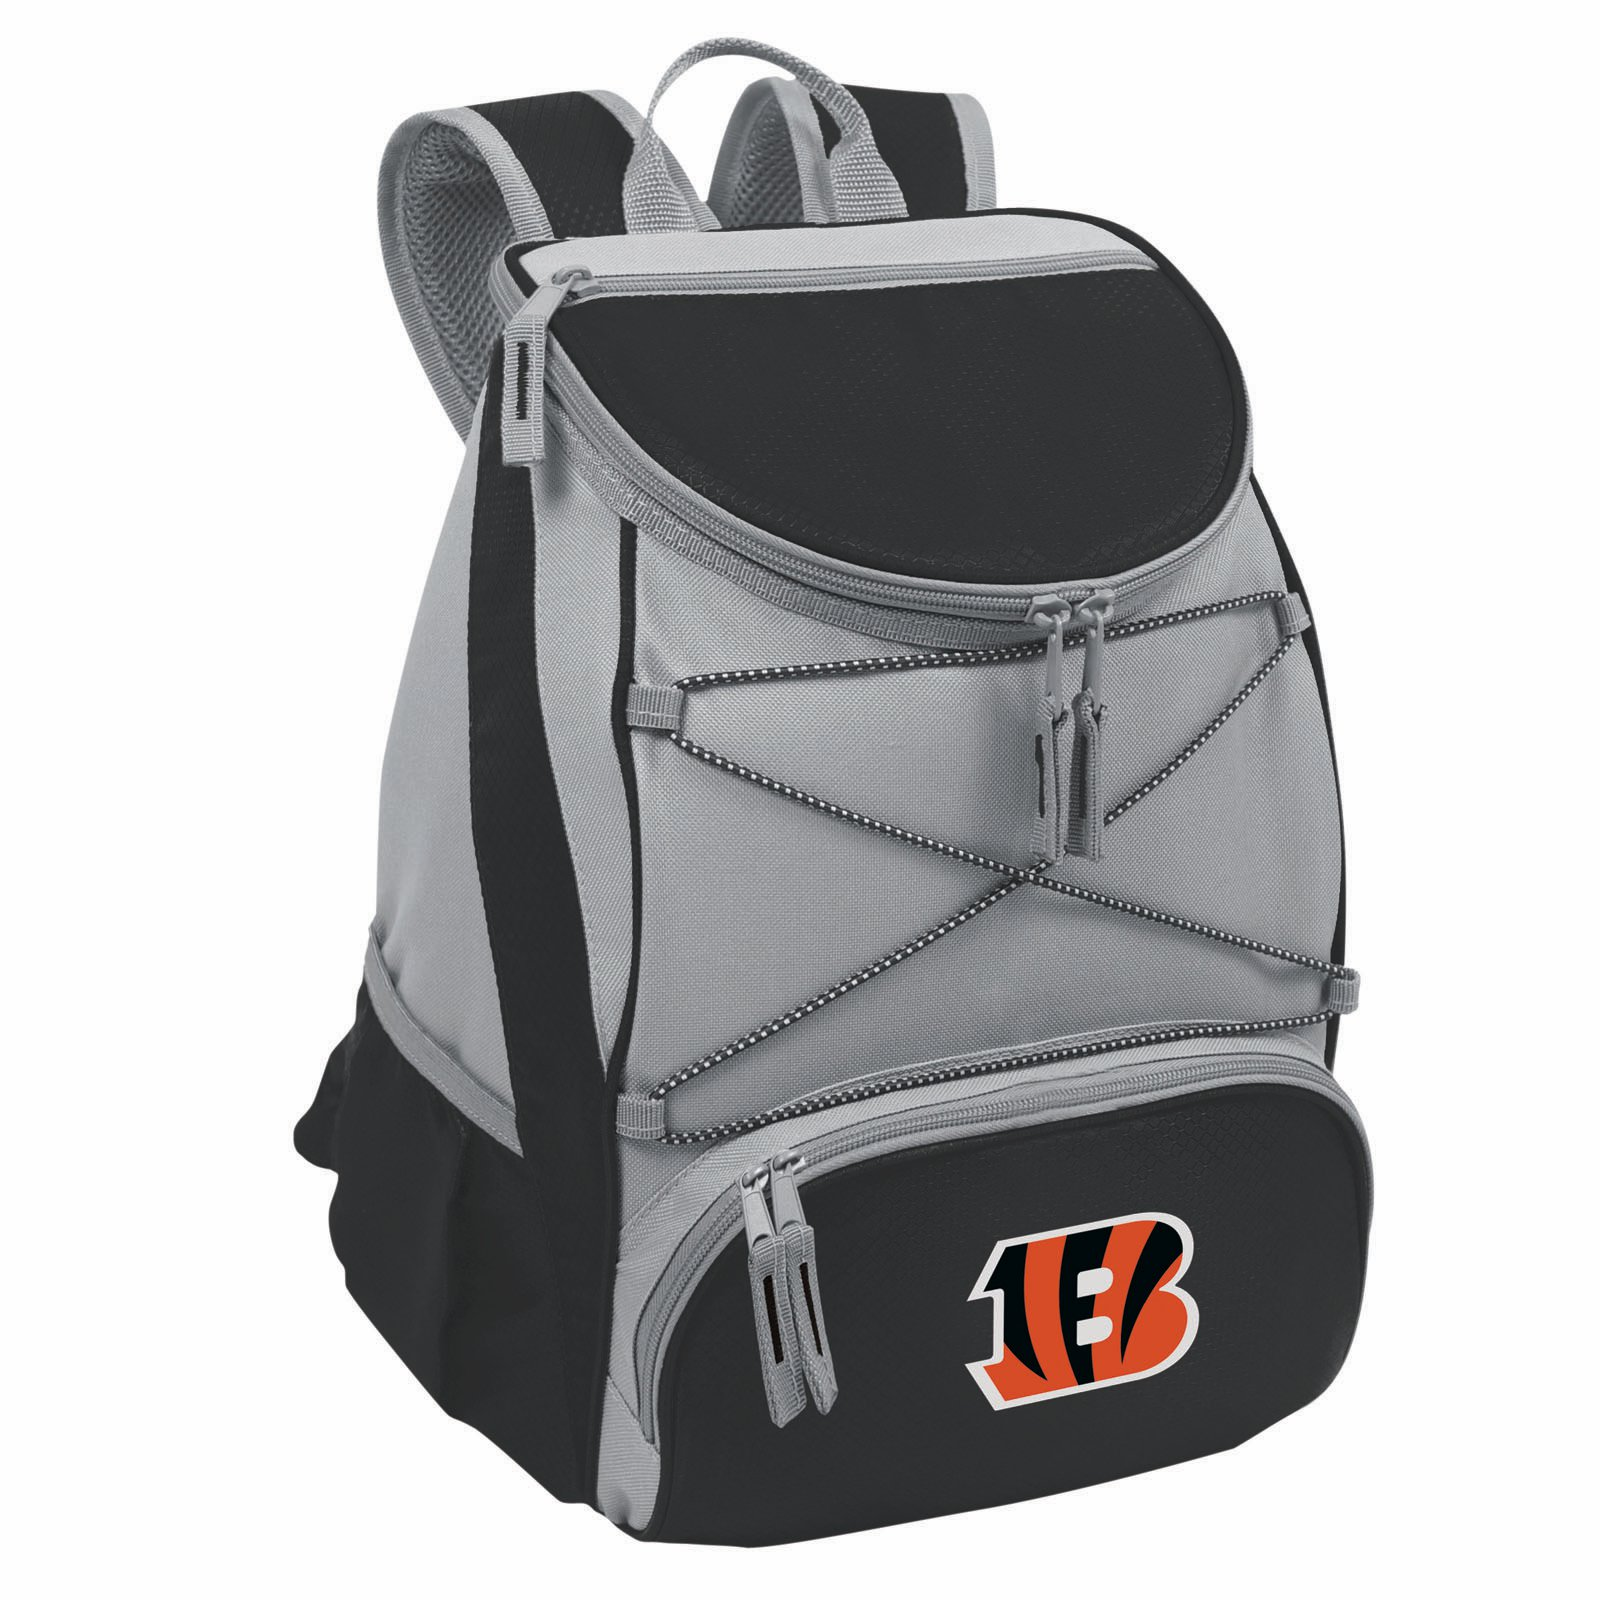 Picnic Time PTX Cooler, Black Cincinnati Bengals Digital Print